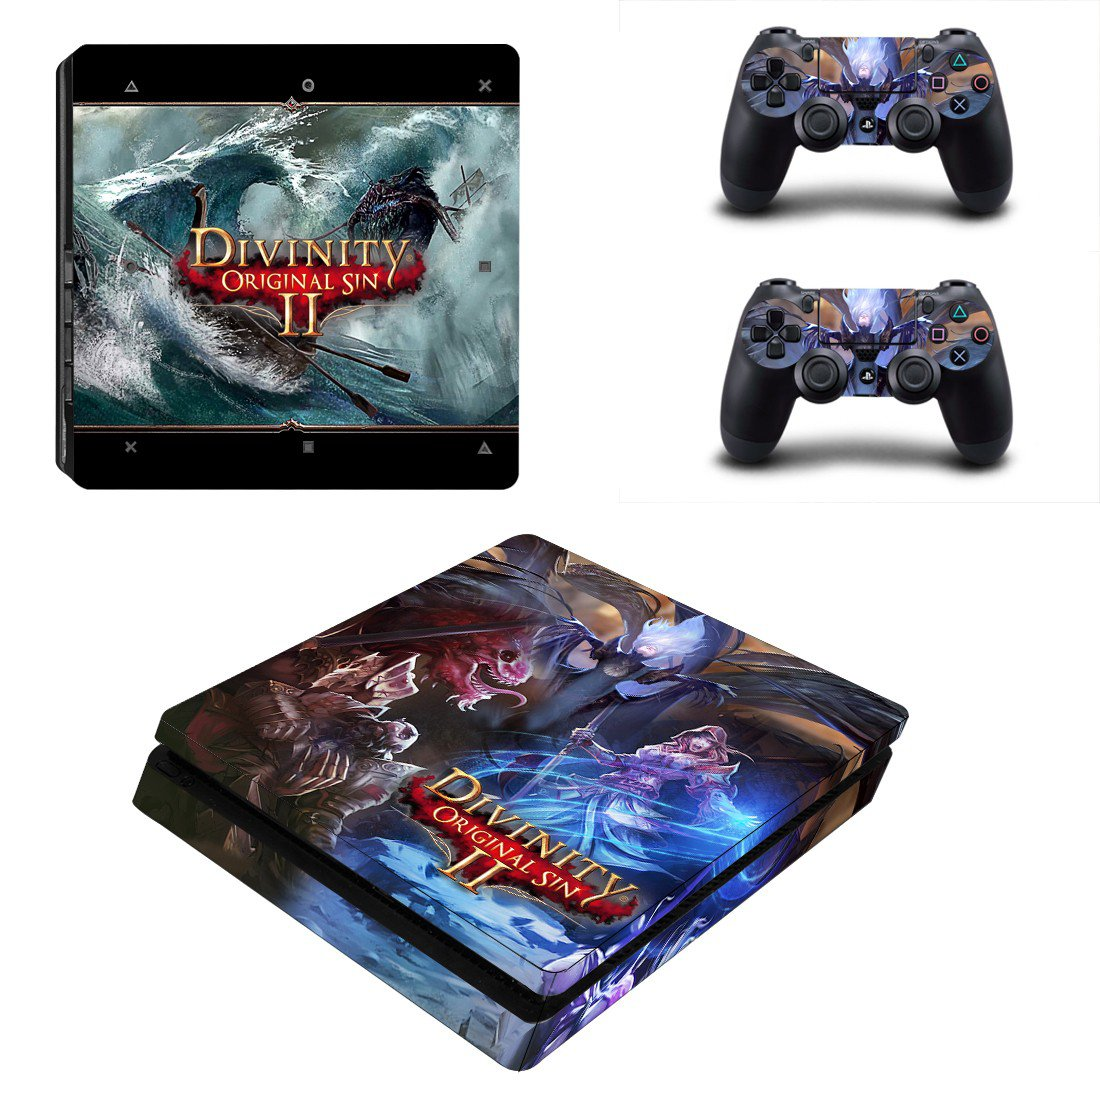 Divinity Original Sin 2 decal skin sticker for PS4 Slim console and controllers